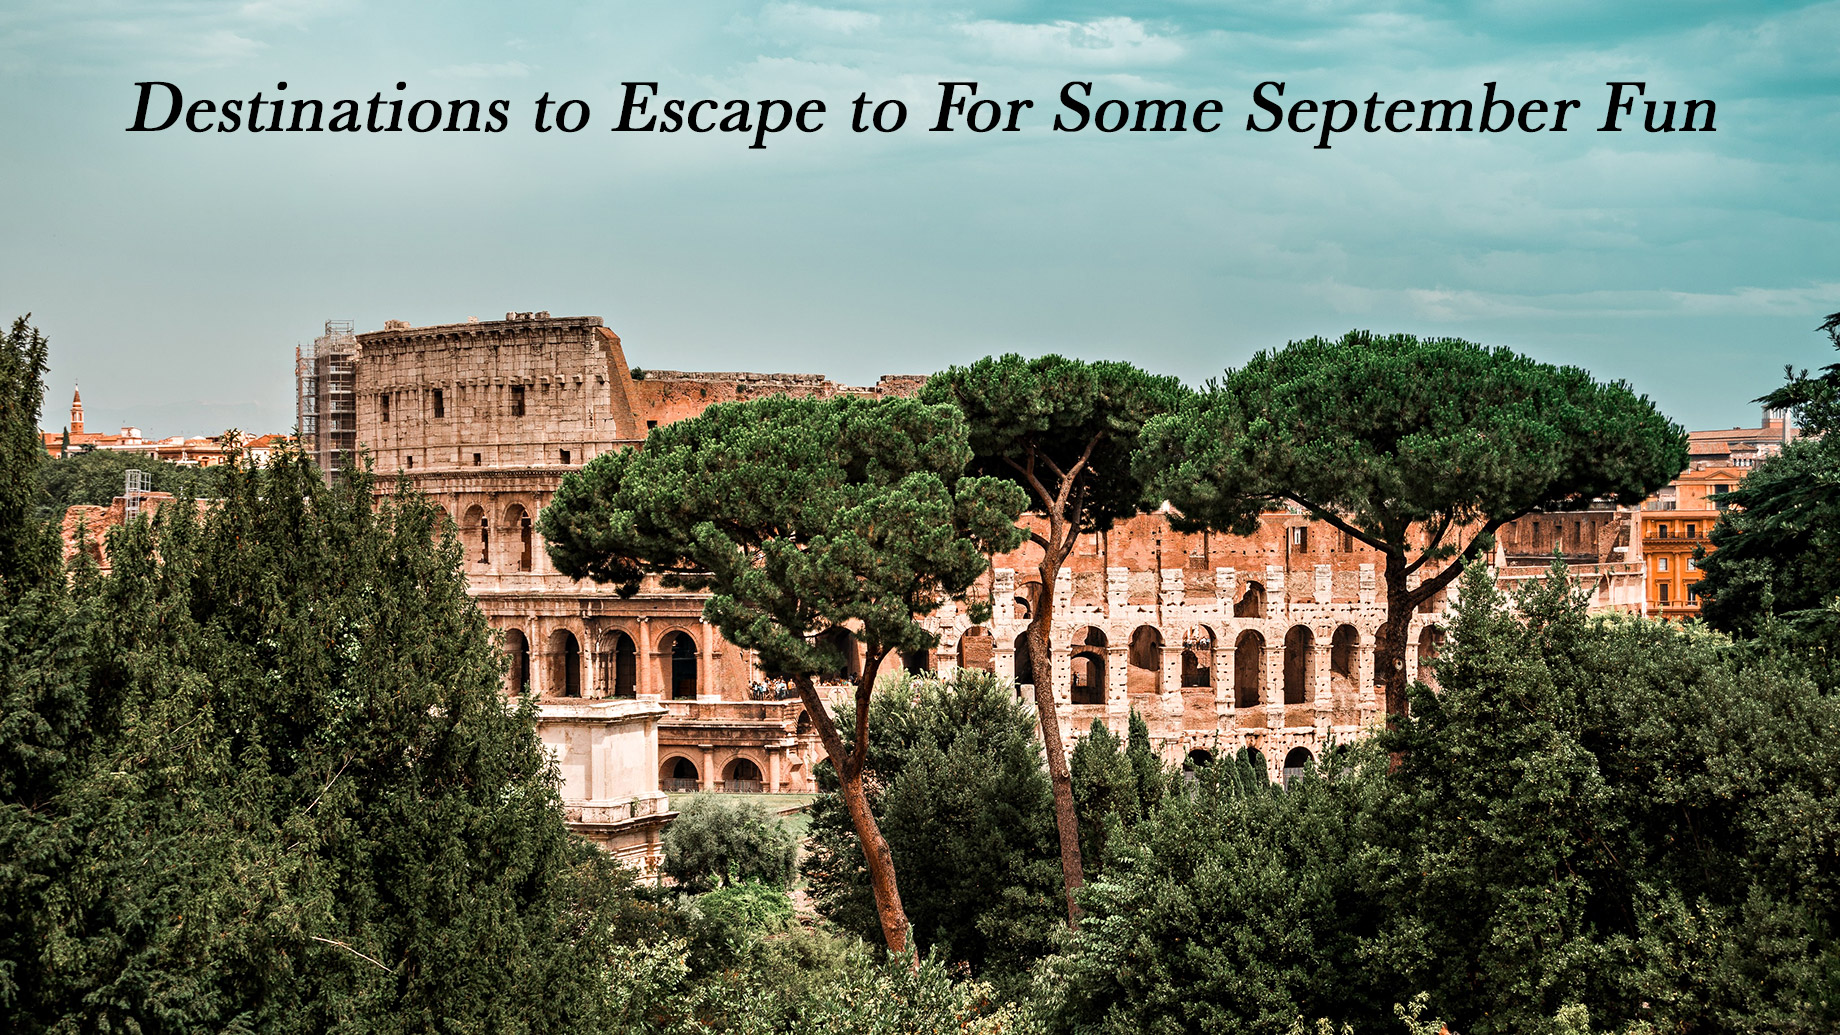 Destinations to Escape to For Some September Fun